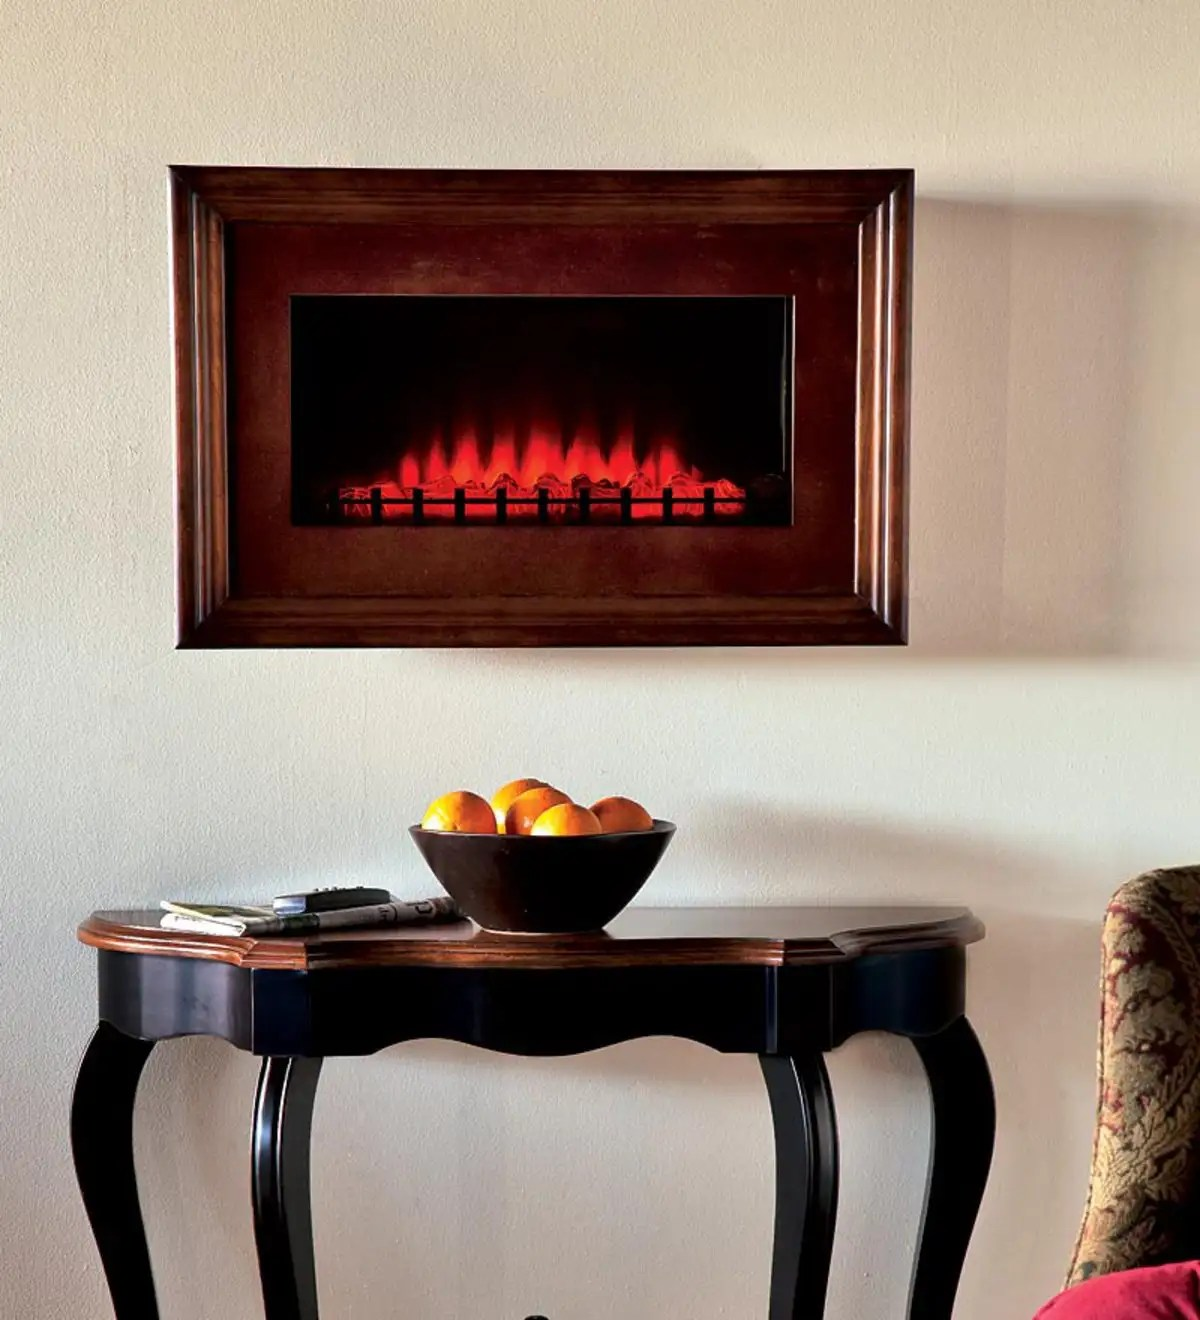 Wall Mount Fireplaces Walnut Finished Wood Framed Electric Wall Mount Fireplace Plowhearth